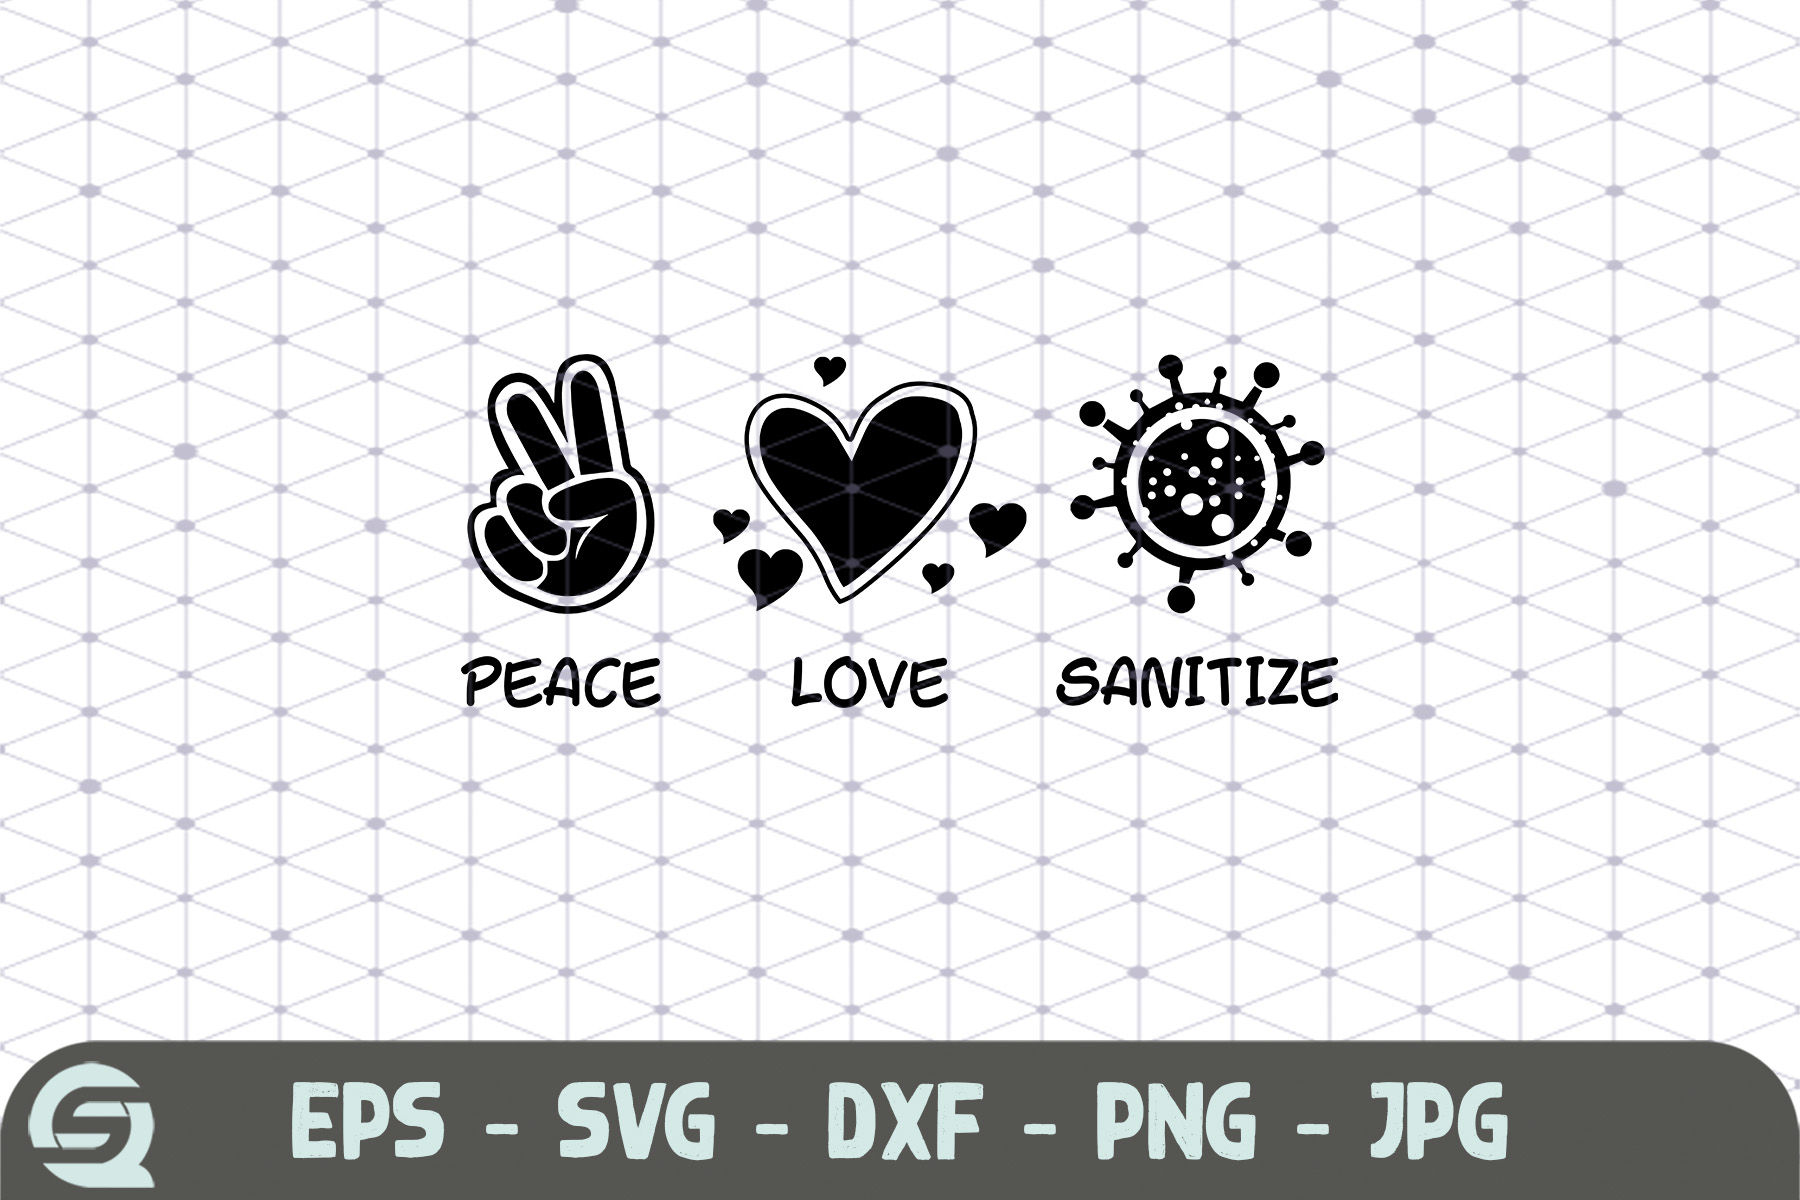 Download Free Peace Love Sanitize Coronavirus Graphic By Crafty Files for Cricut Explore, Silhouette and other cutting machines.